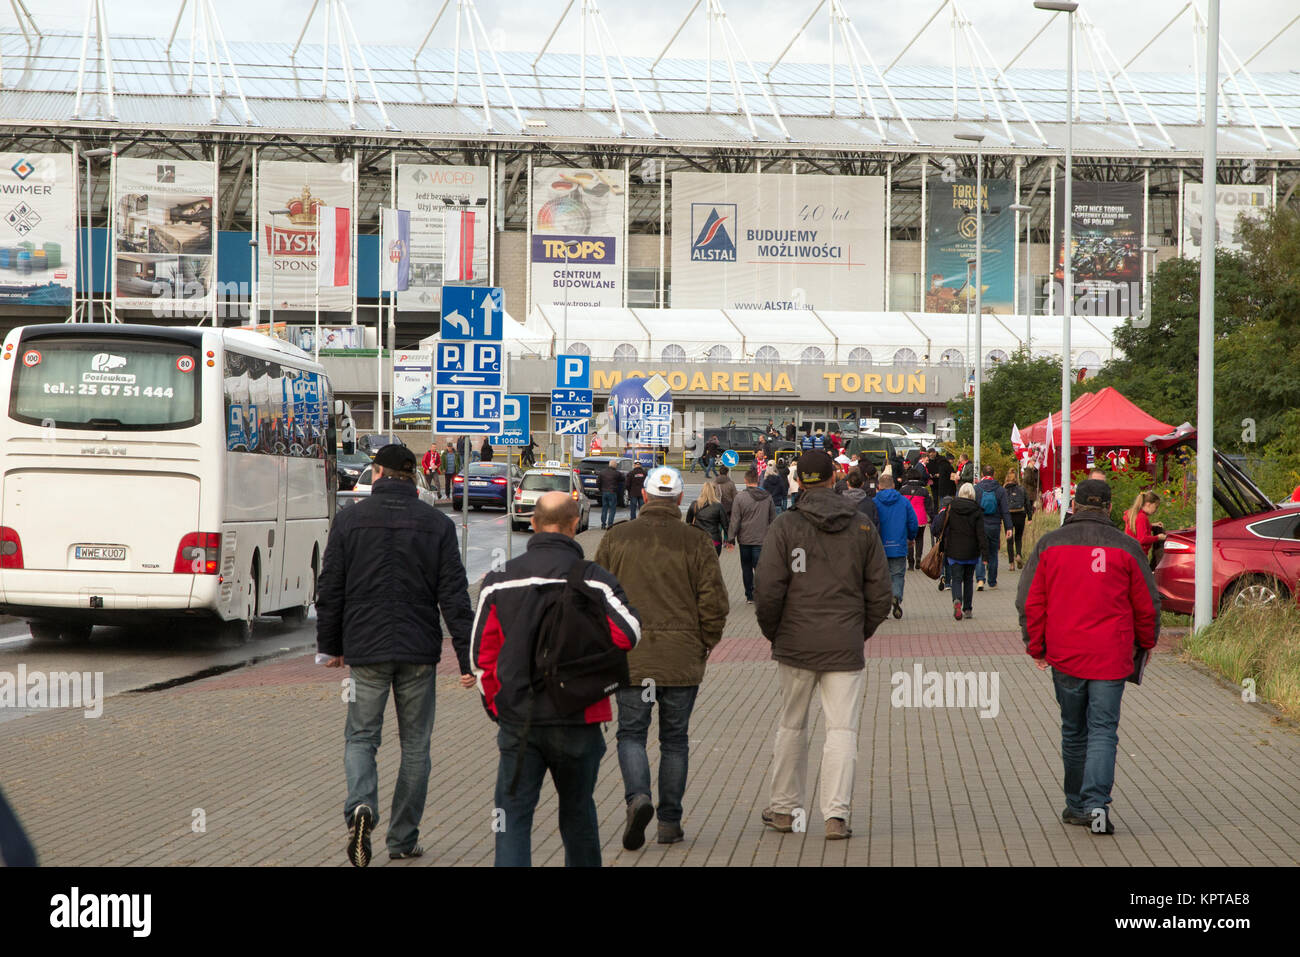 Speedway supporters making their way to the Motoarena Torun Poland  for the Polish speedway grand prix - Stock Image